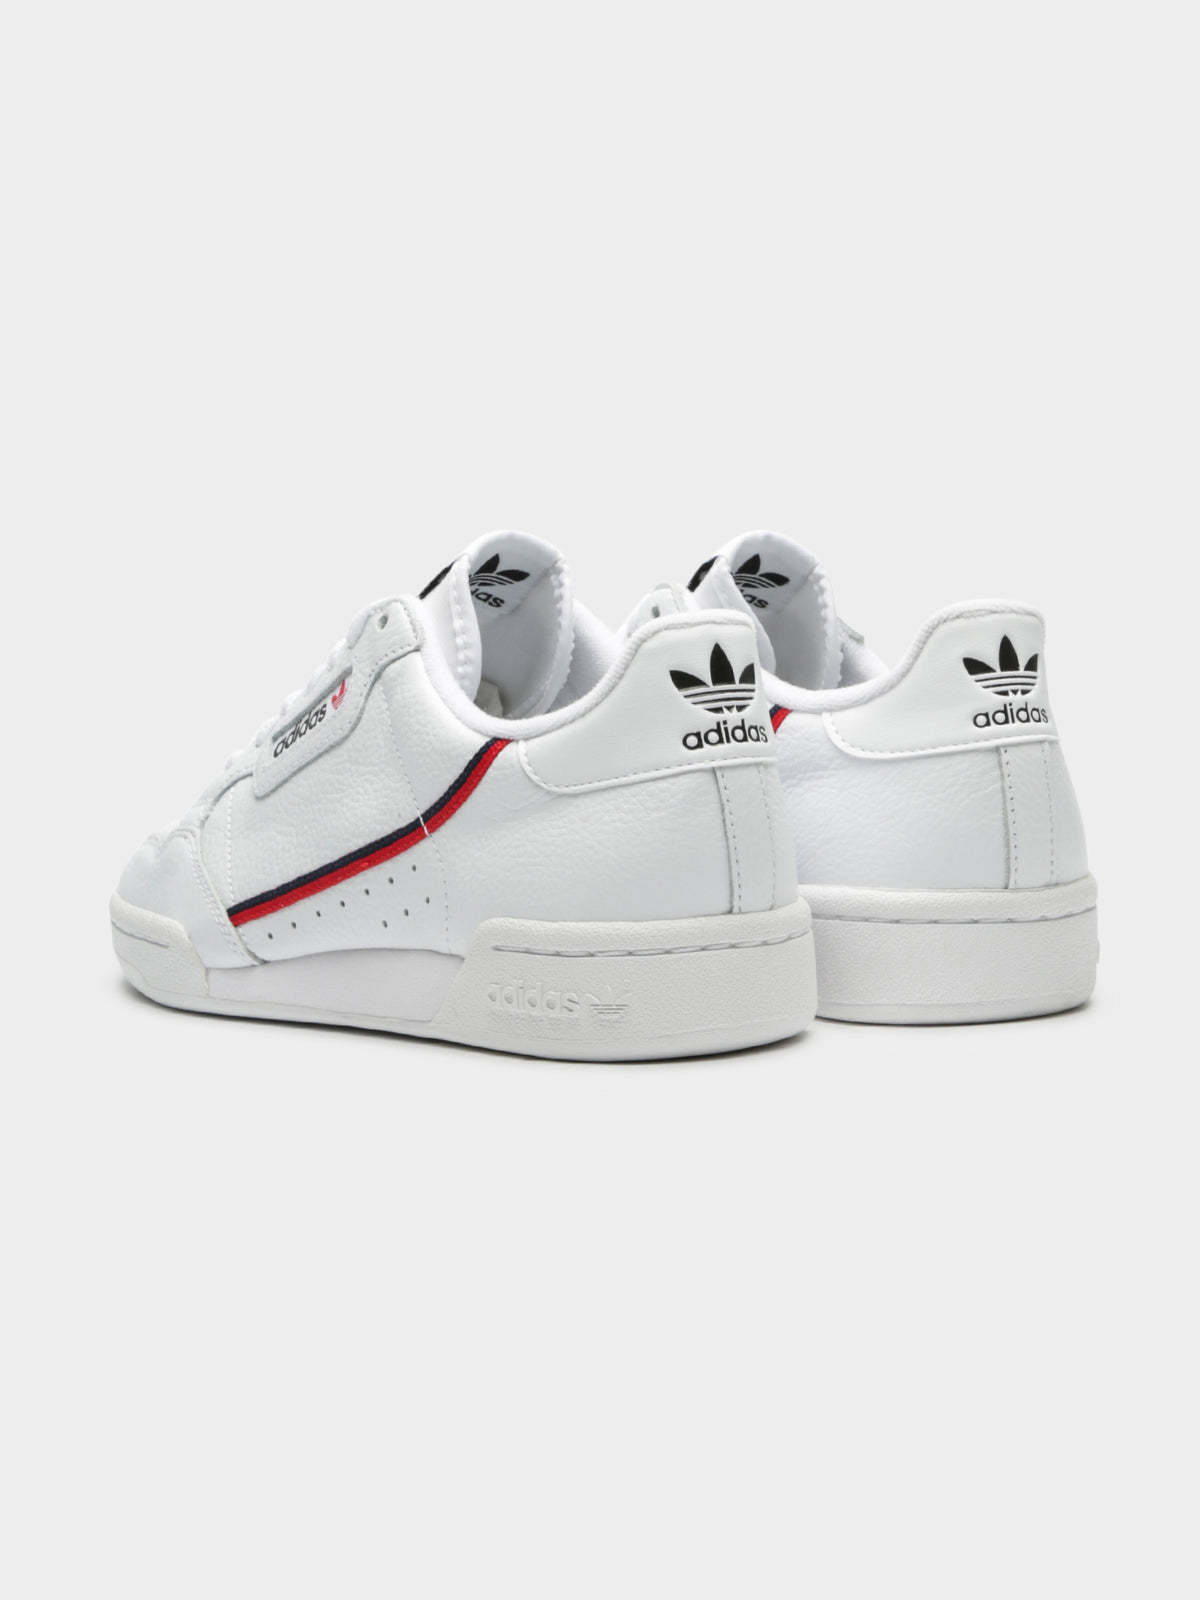 Unisex Continental 80 Sneakers in White